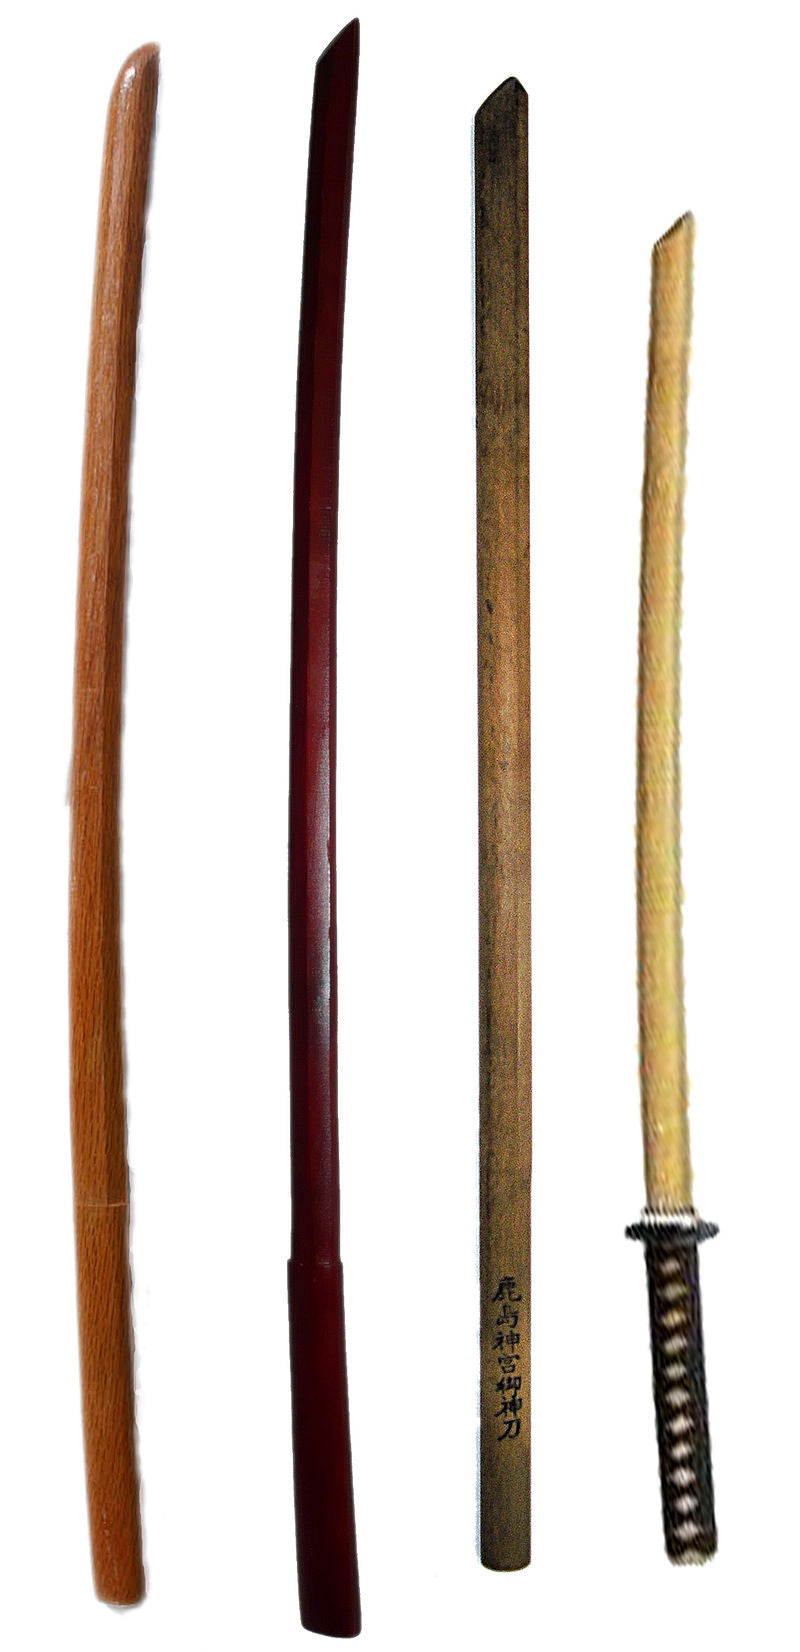 Comparing the Different Types of Bokken